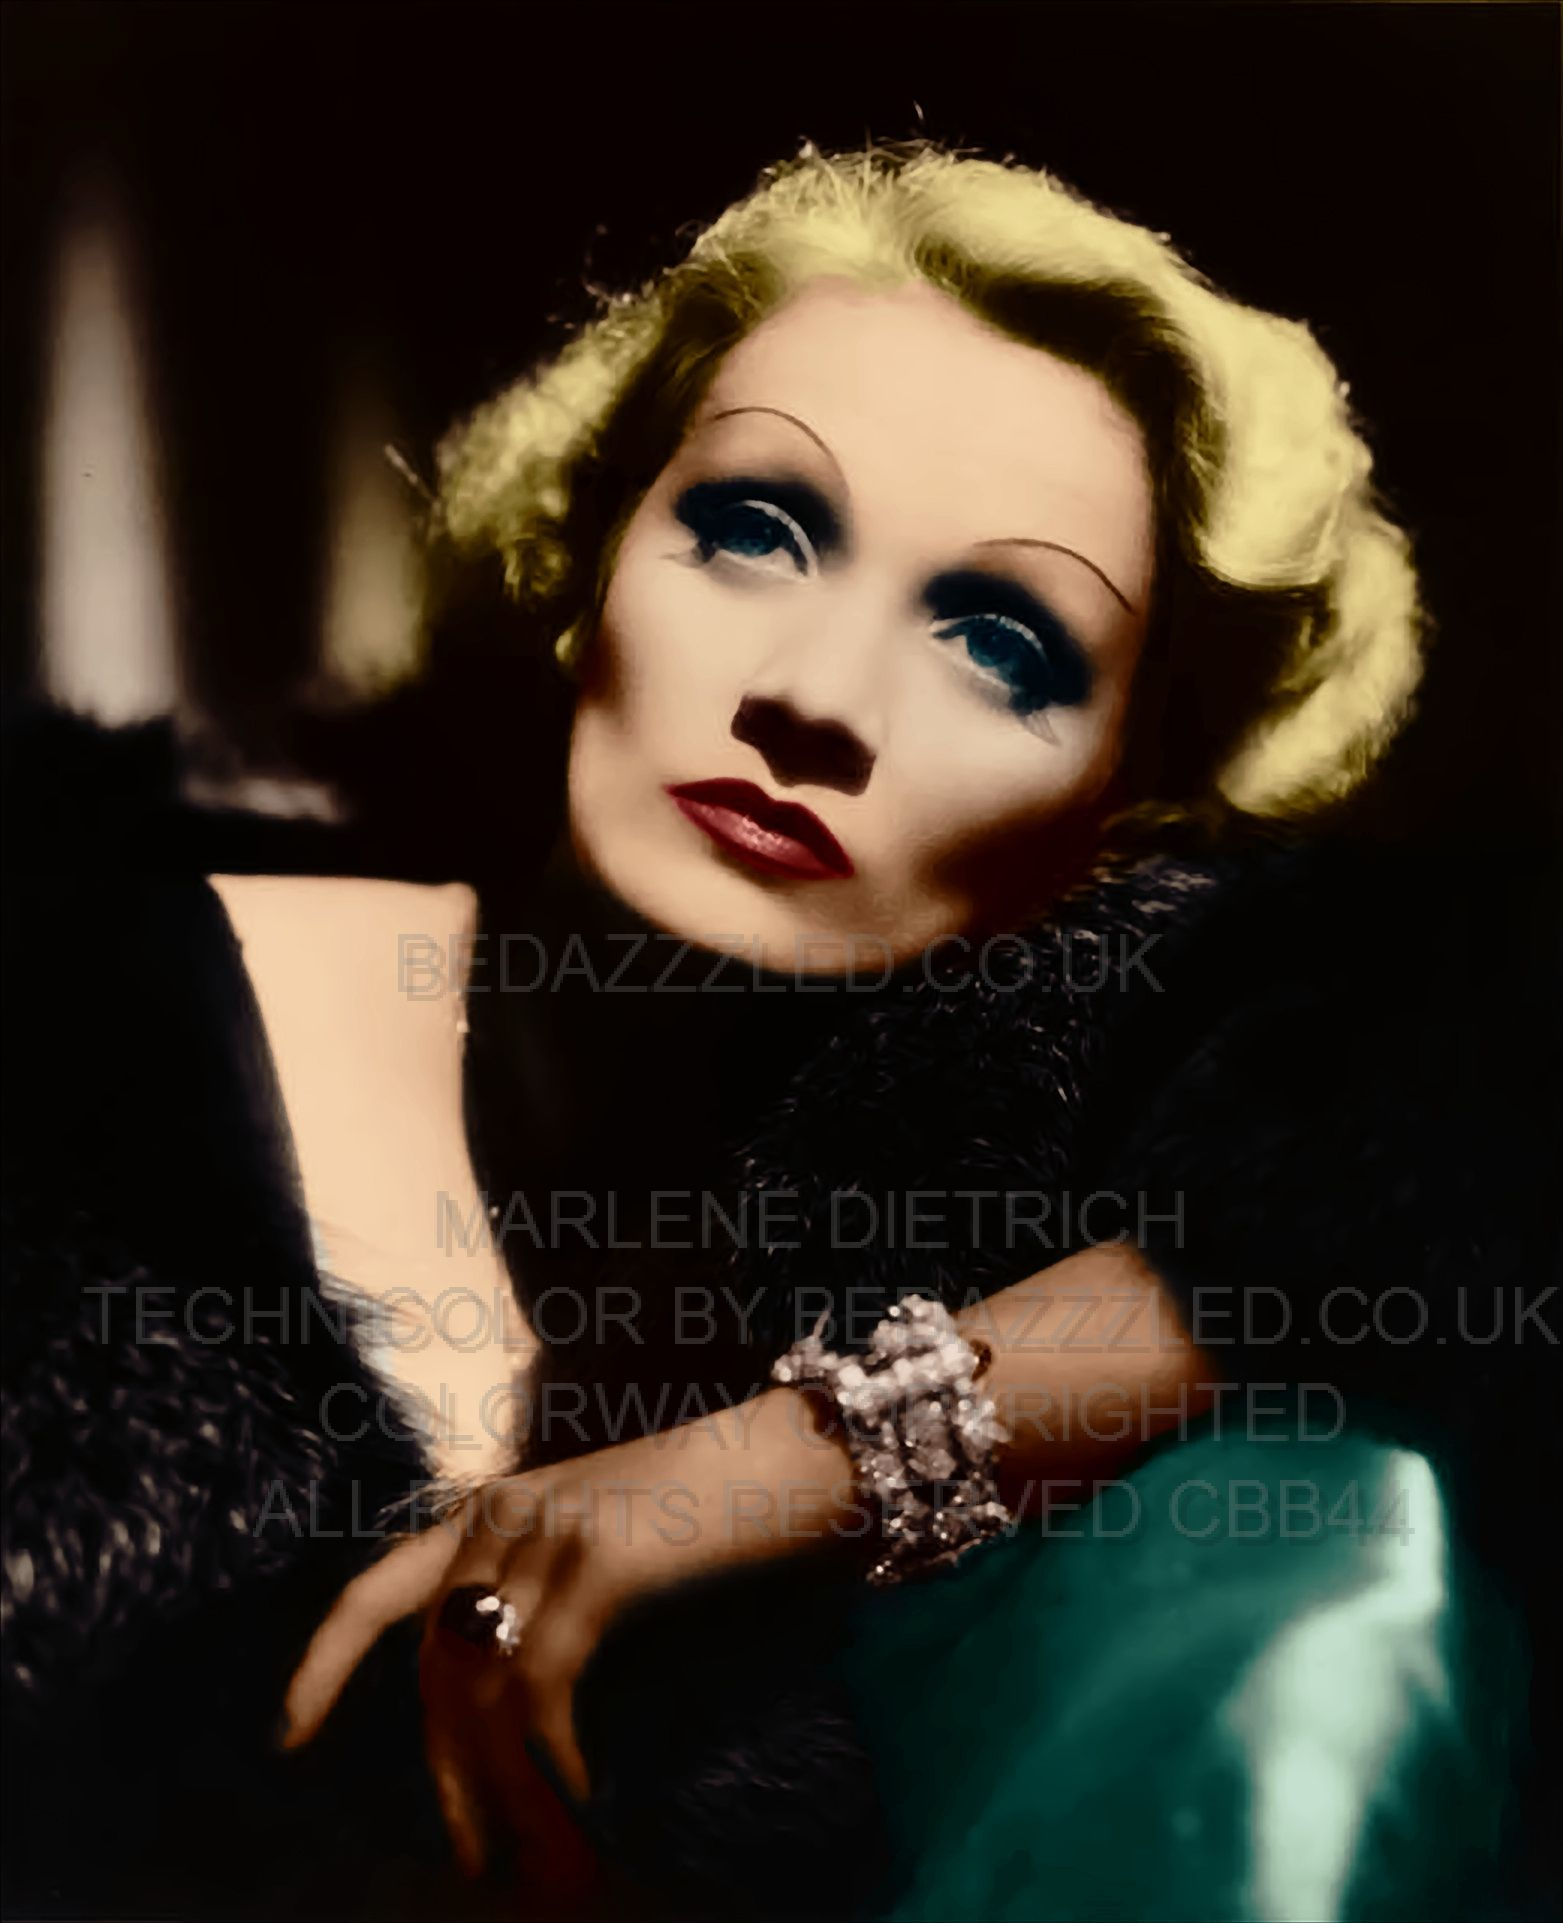 Marlene Dietrich Technicolor Conversion By Bedazzzled Co Uk  # Muebles Pubal Lieres